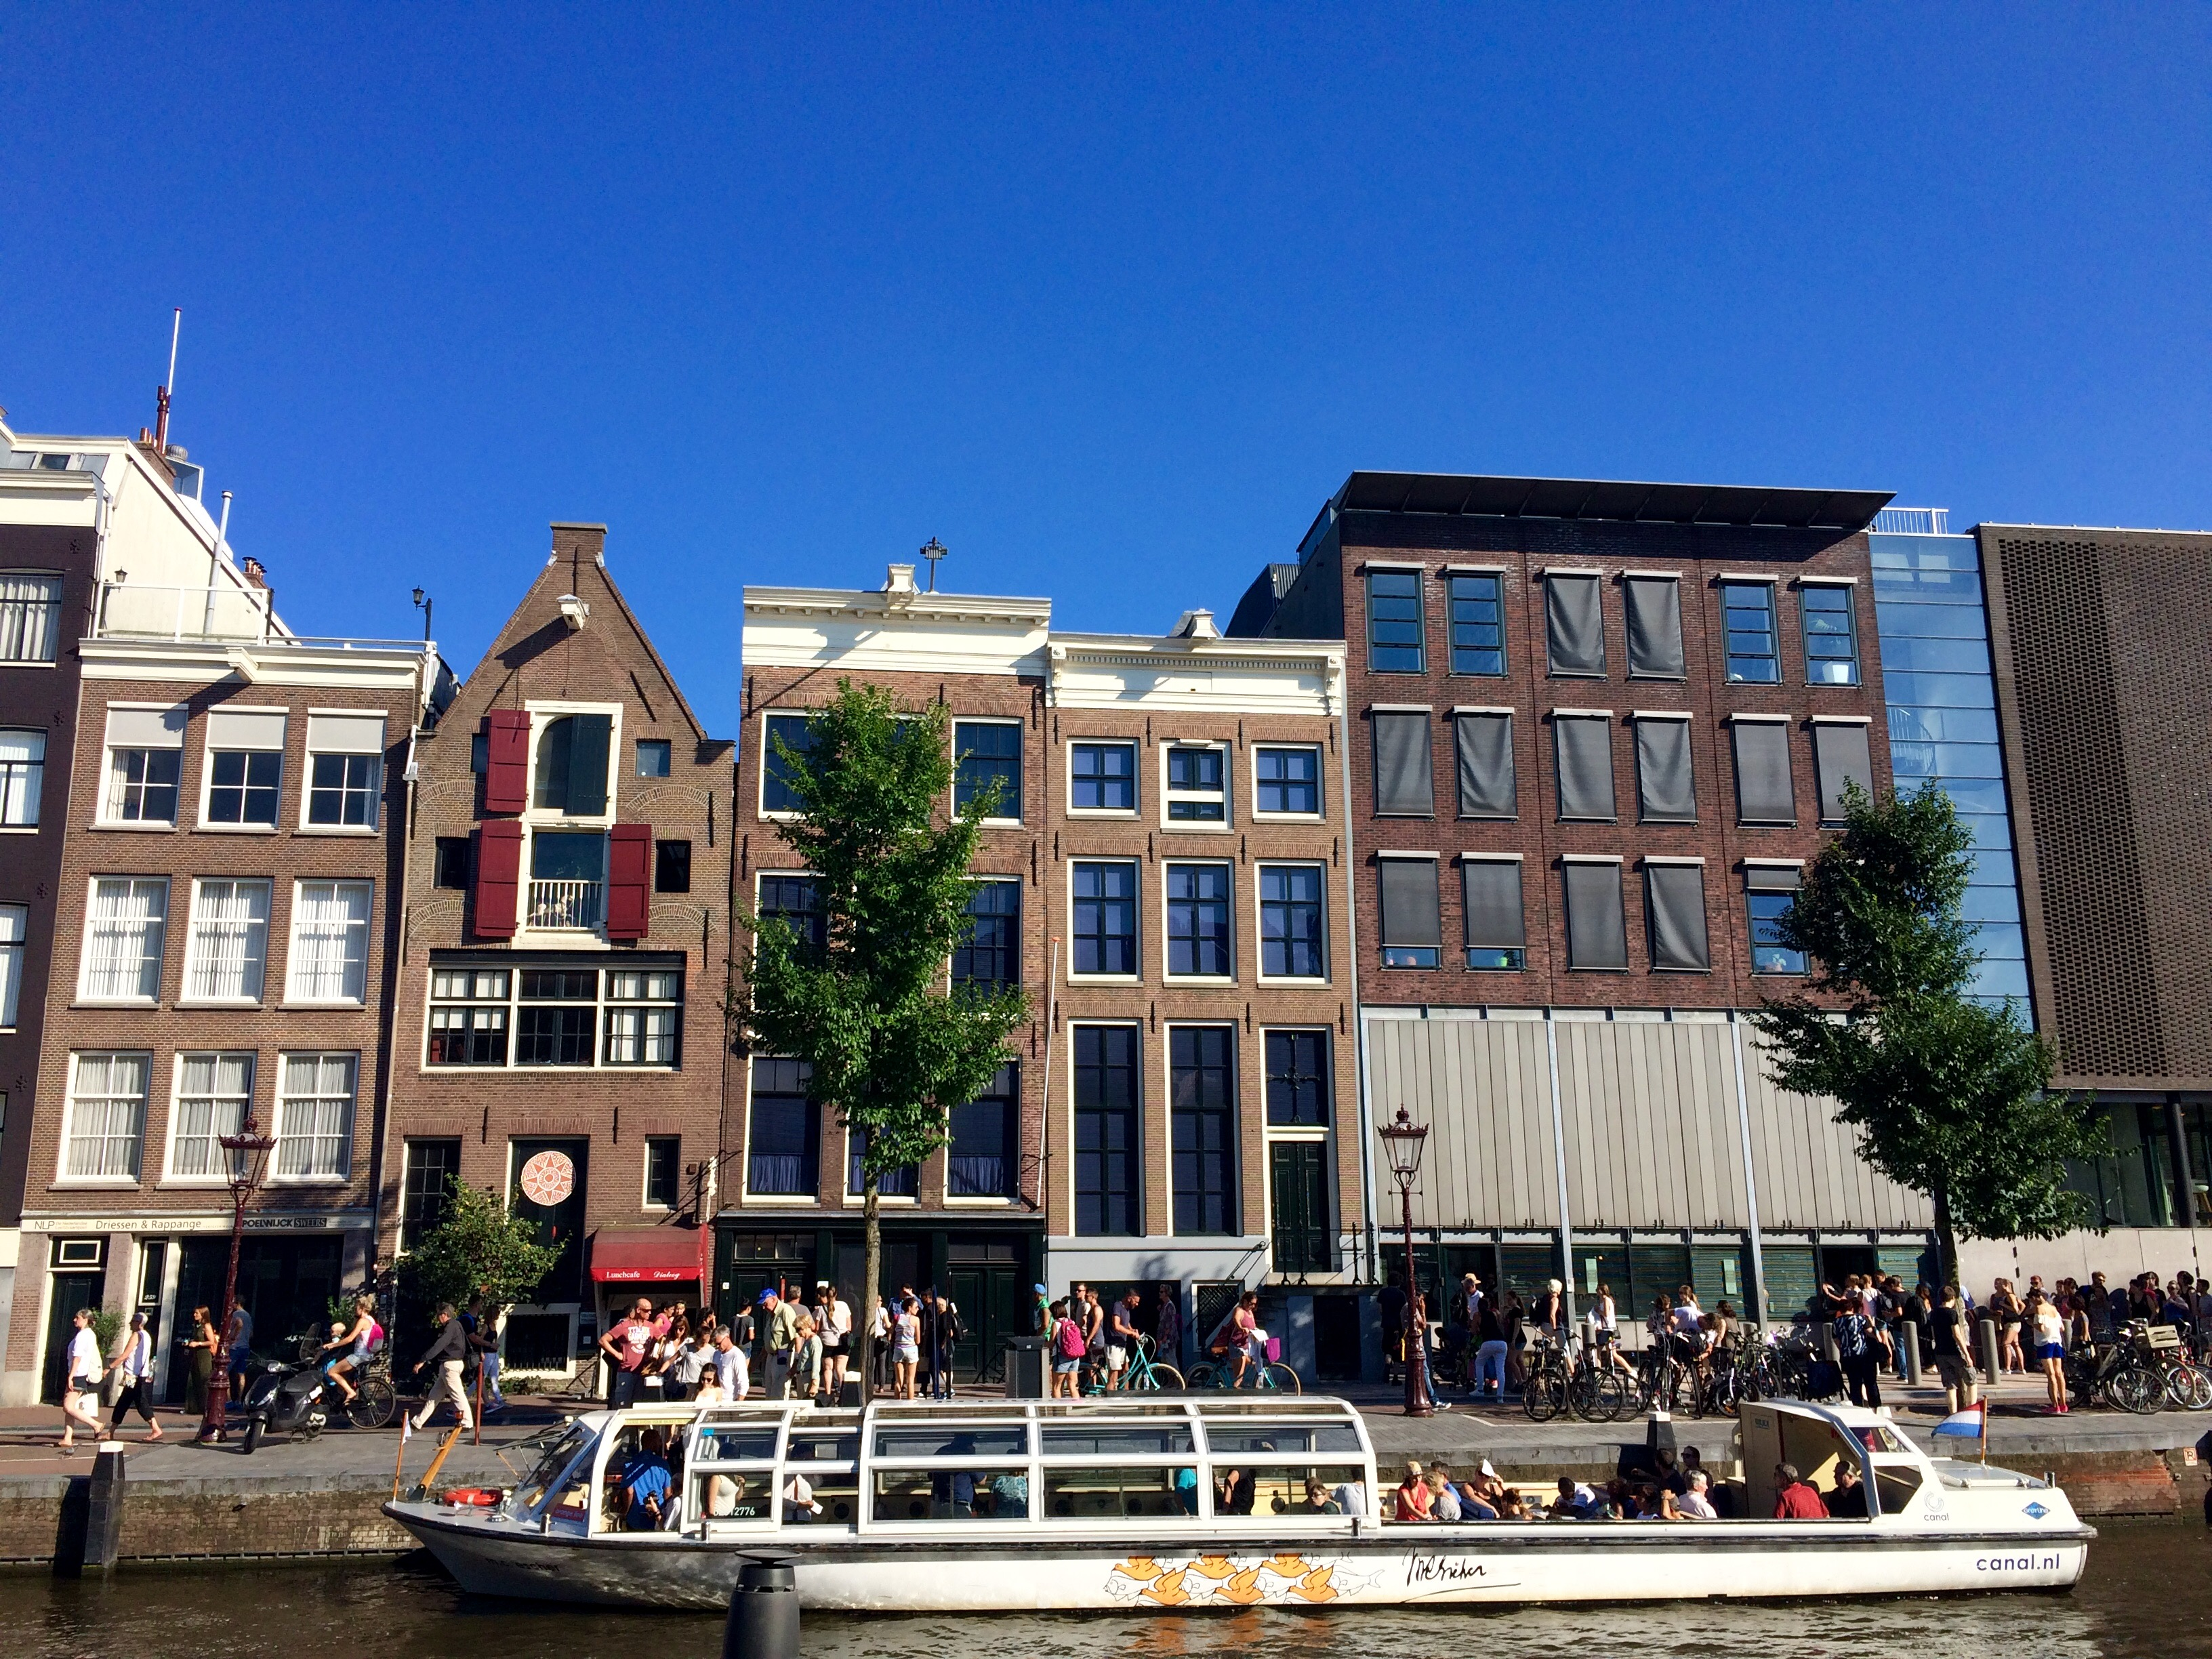 Anne Frank House | Photo by Wilson Carletti (All Rights Reserved)